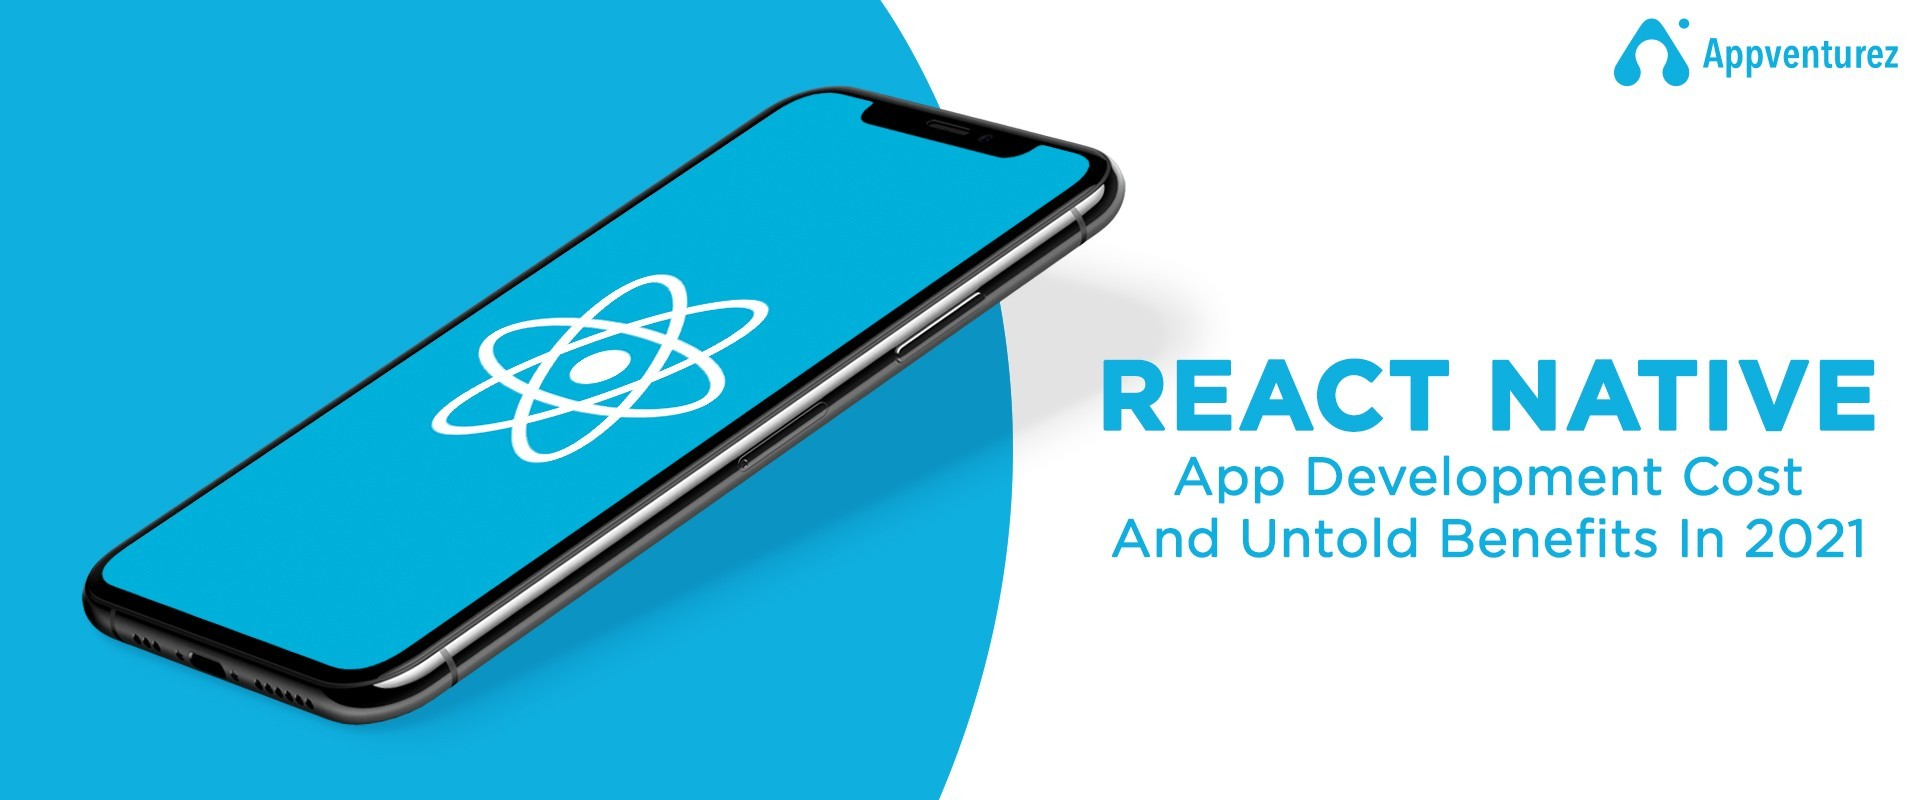 How Much Does React Native App Development Cost?